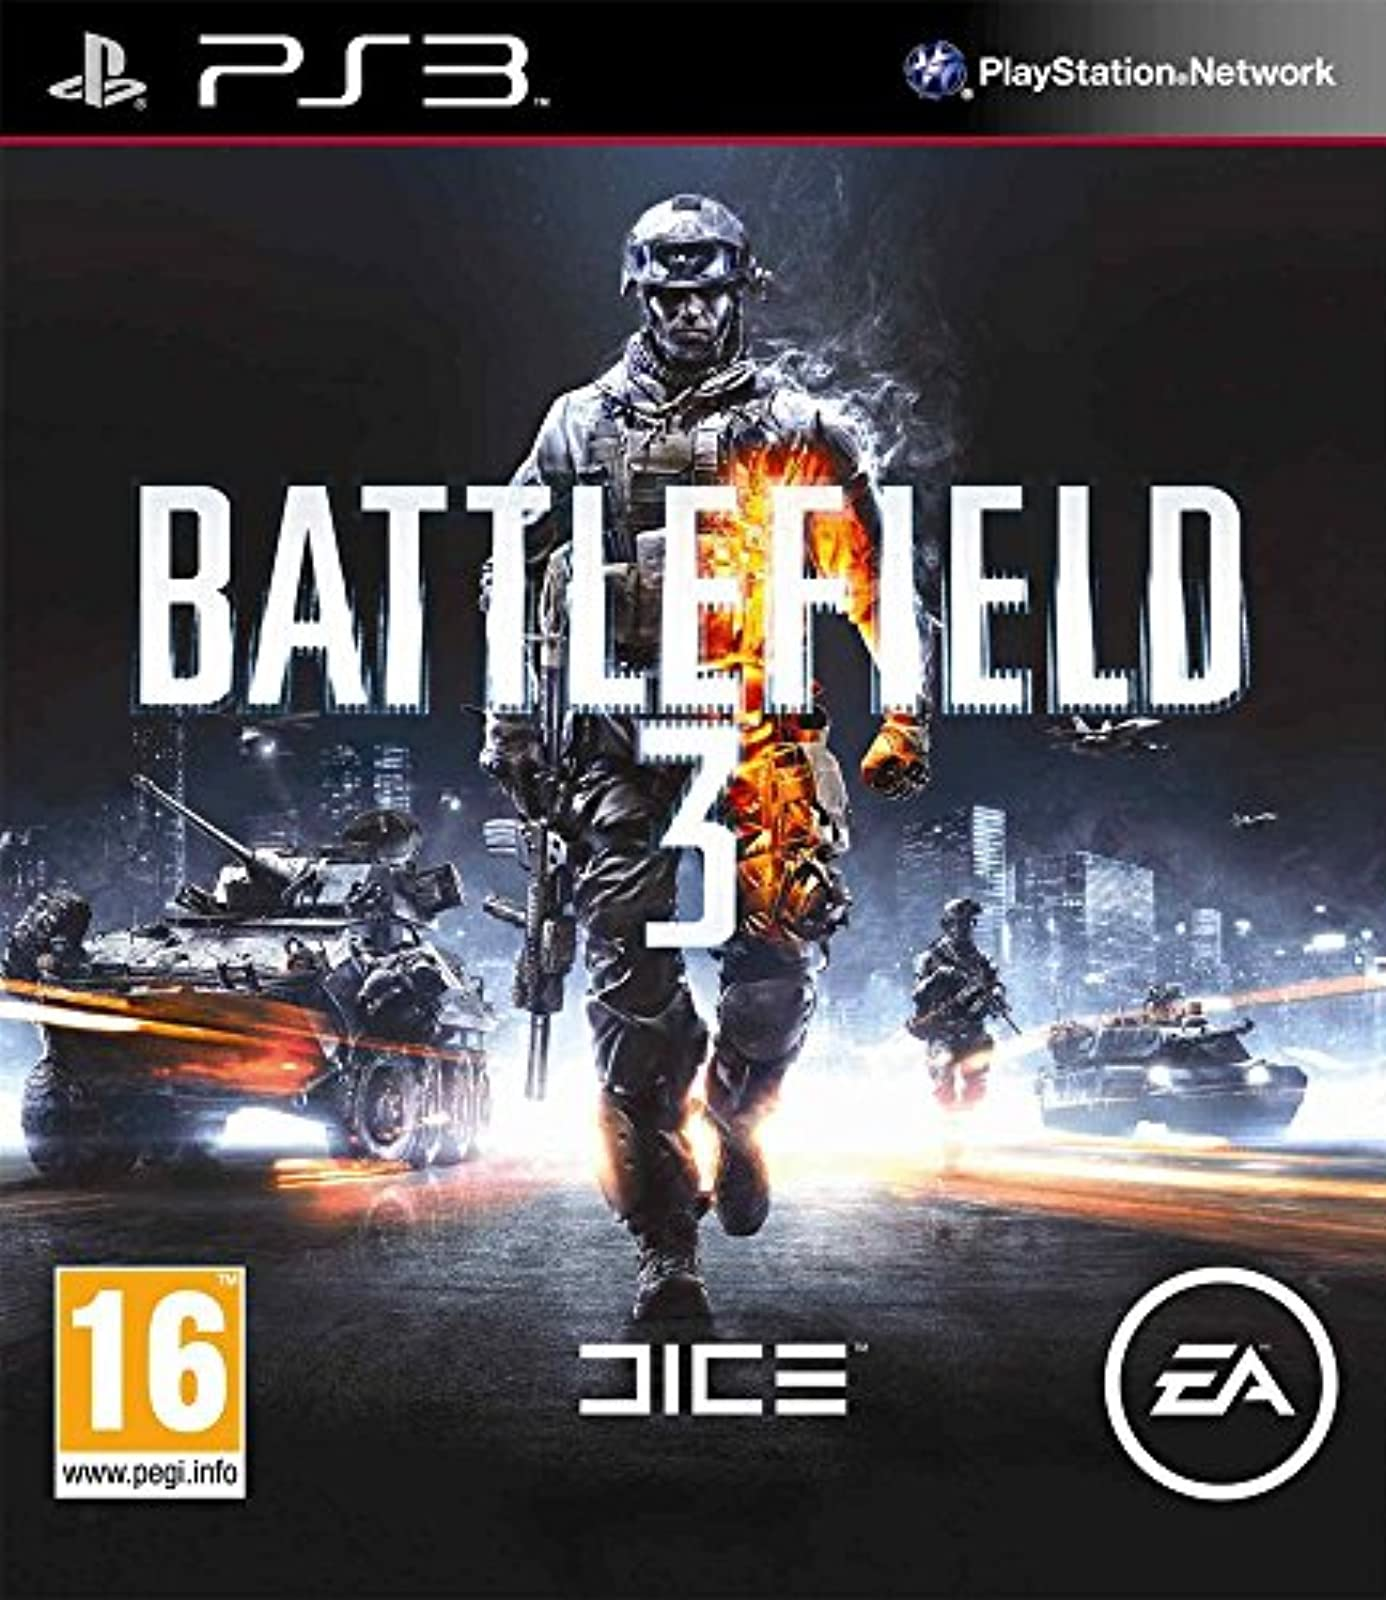 Electronic Arts Battlefield 3 Game For PS3